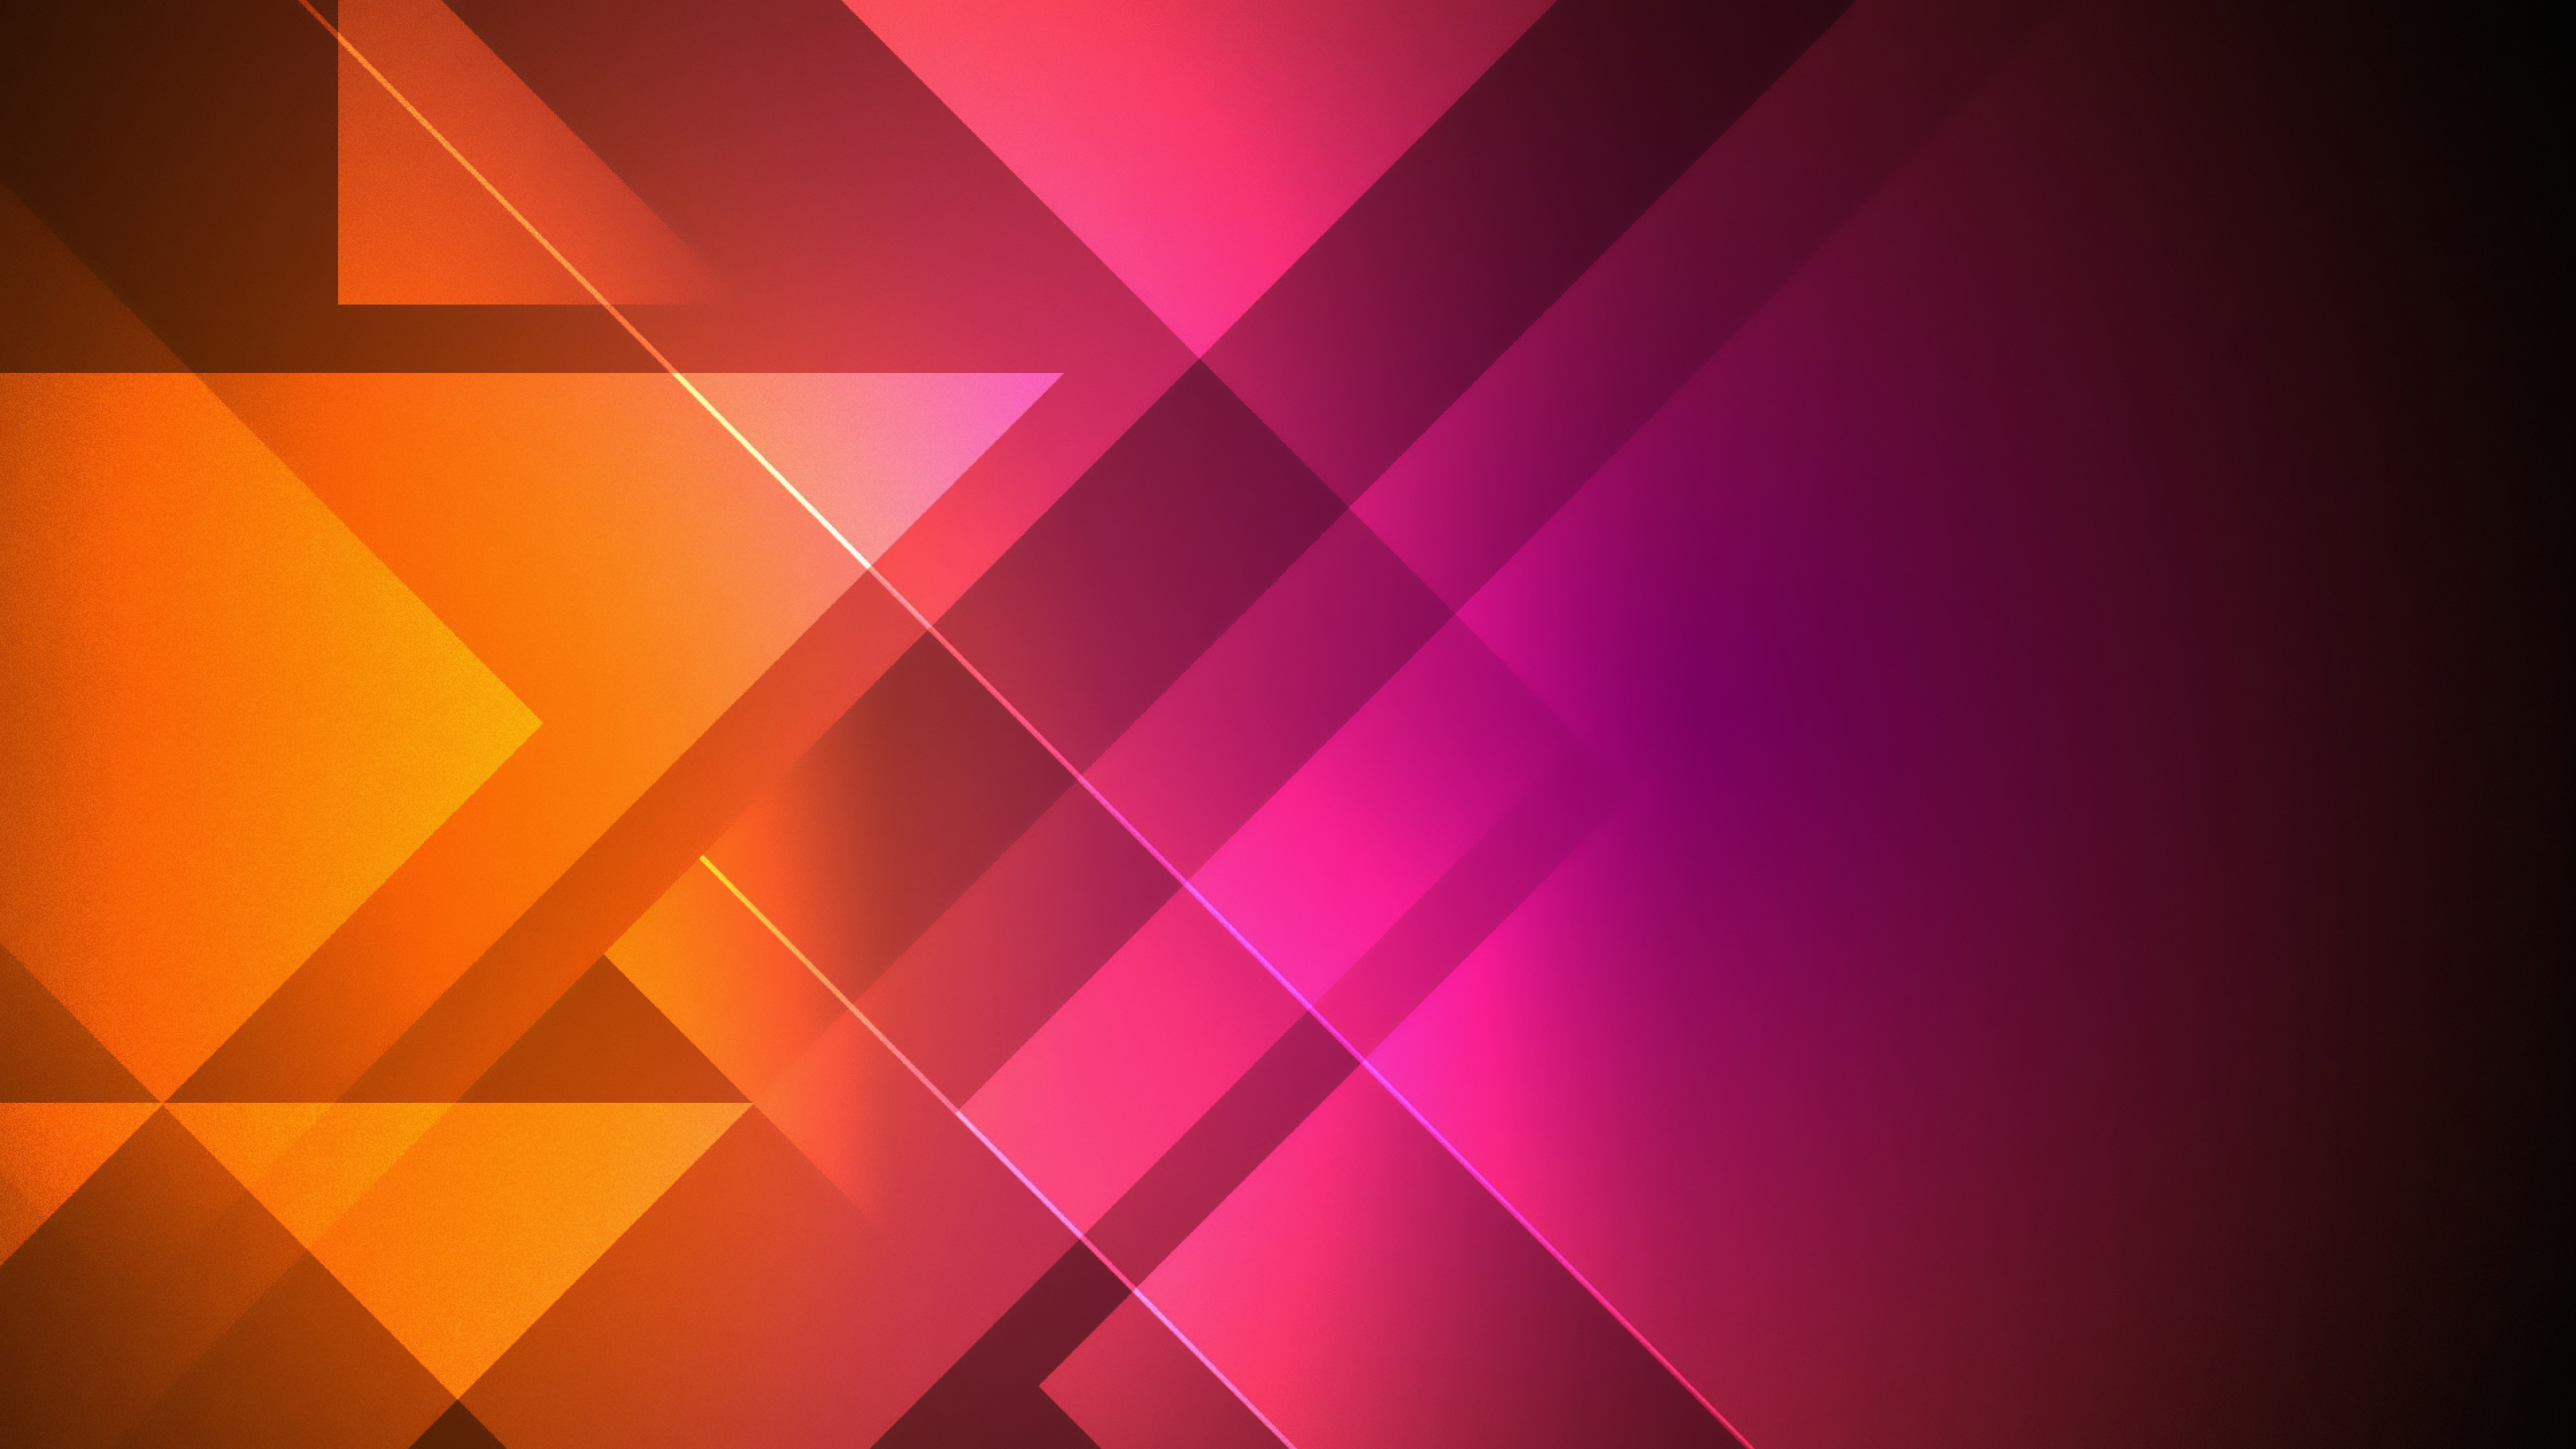 Solid Color Wallpaper Iphone 5 Dark Red Background Wallpaper 66 Images